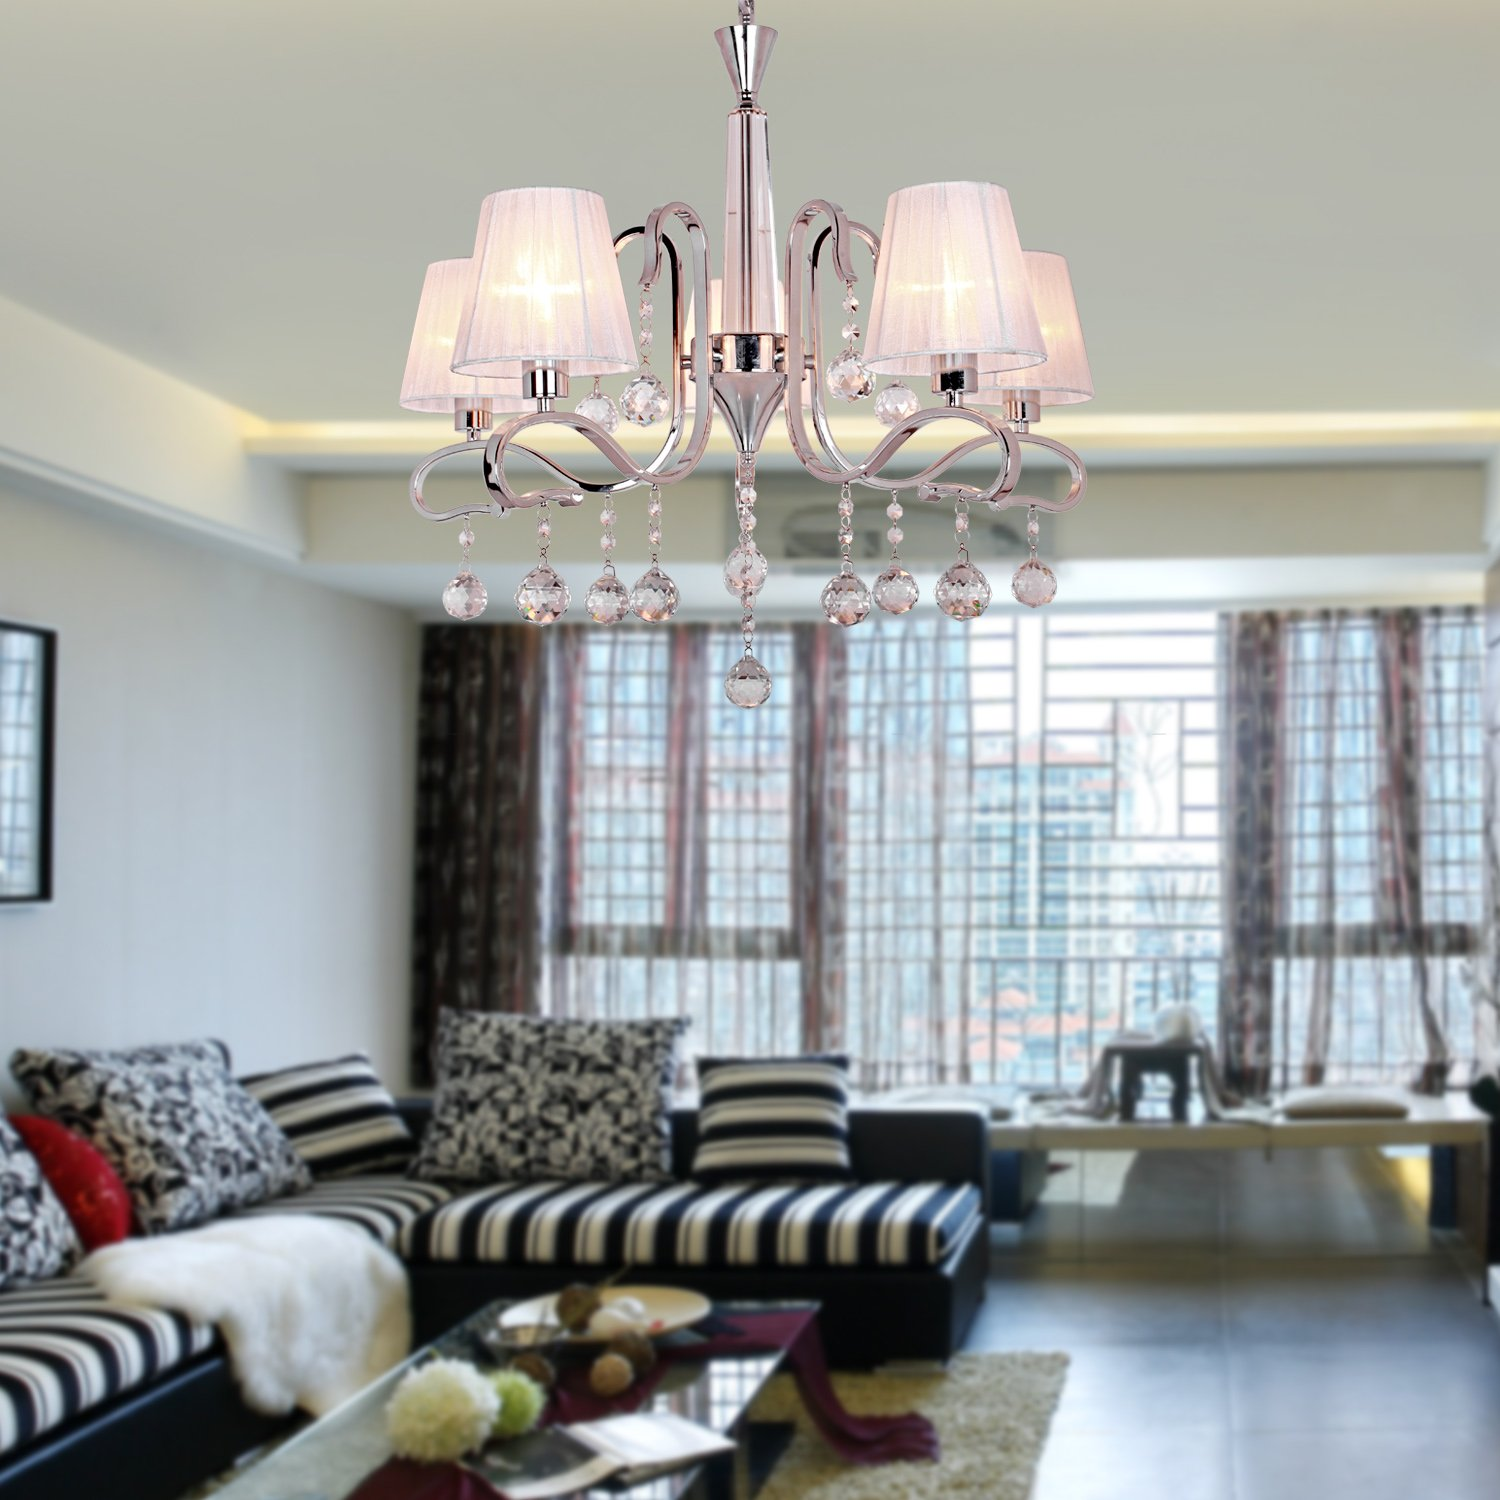 Modern Crystal Chandeliers With 5 Lights White, Ceiling Light Fixture  Chandeliers For Living Room, Study Room/Office     Amazon.com